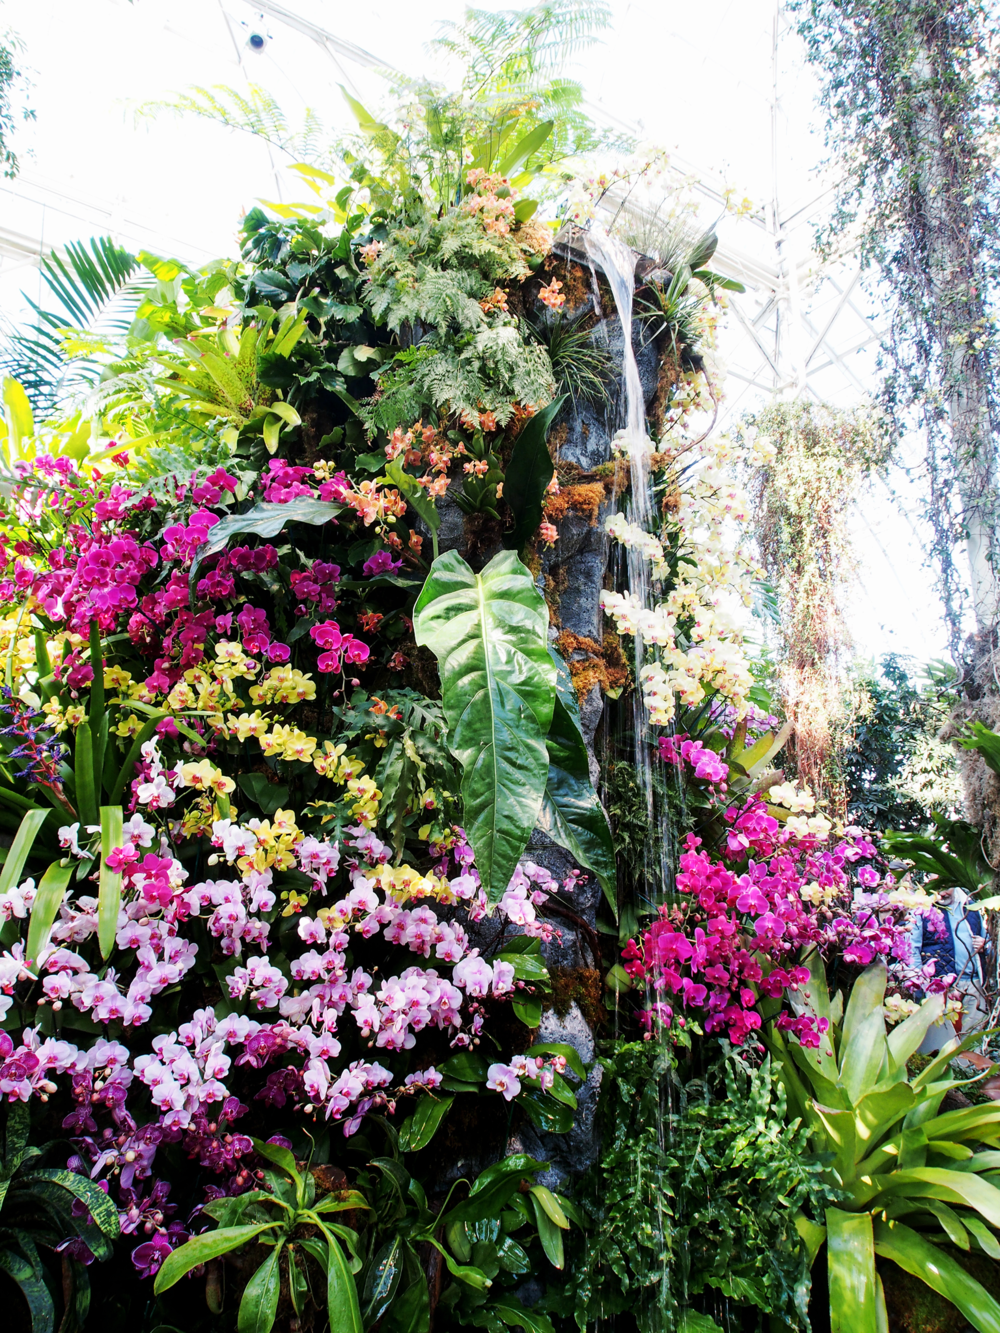 Front & center: The signature centerpiece through the center of the exhibition; an utter wonderment of whimsical vibrant orchids and tropical plants climbing a towering waterfall.